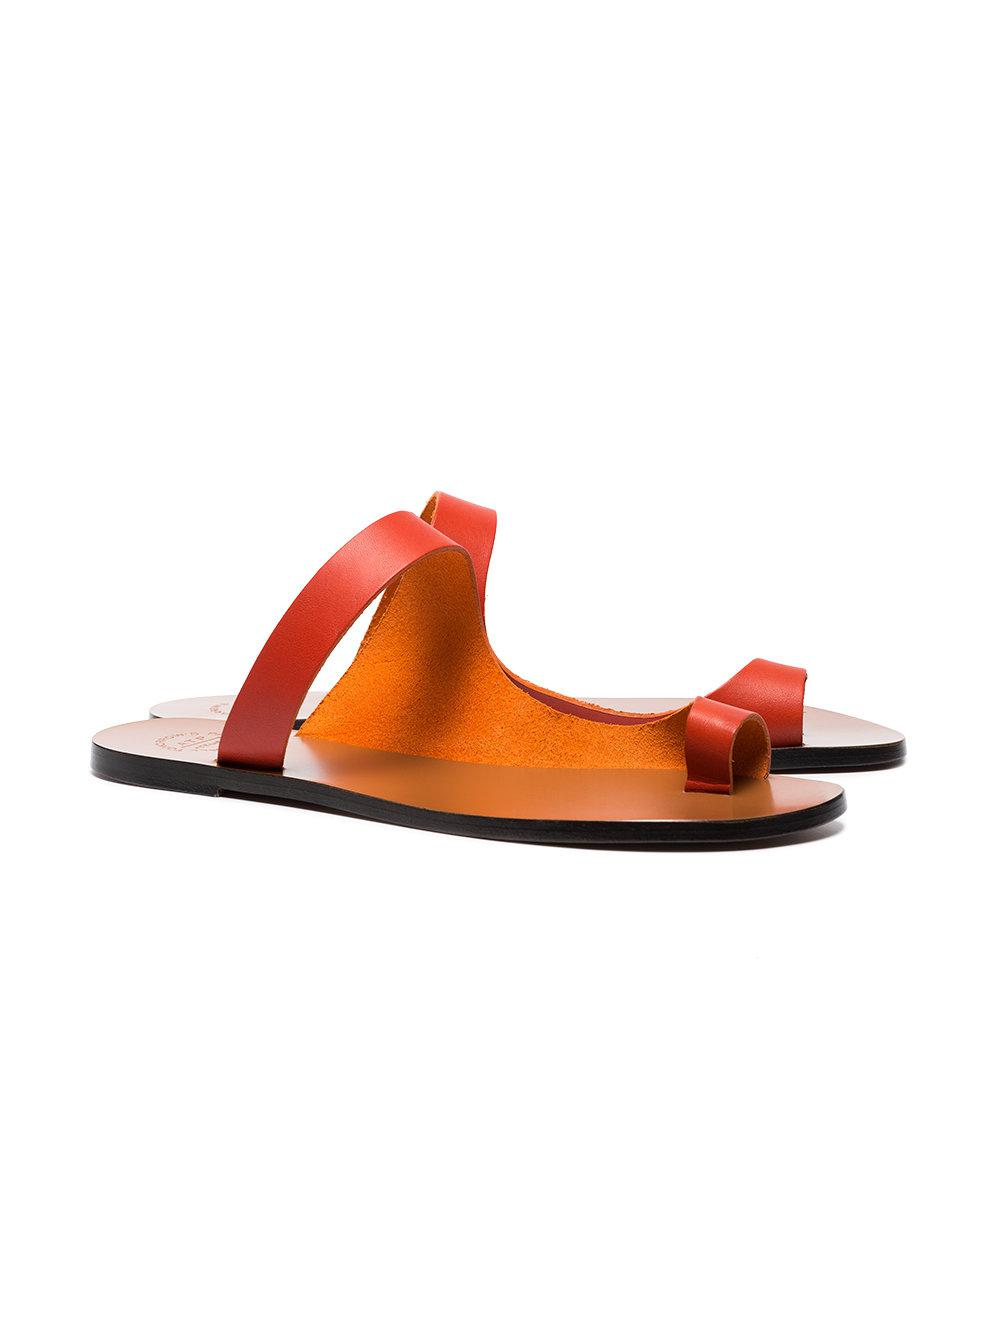 a54be9105be5bd Lyst - Atp Atelier Lava Red Dina Vacchetta Leather Sandals